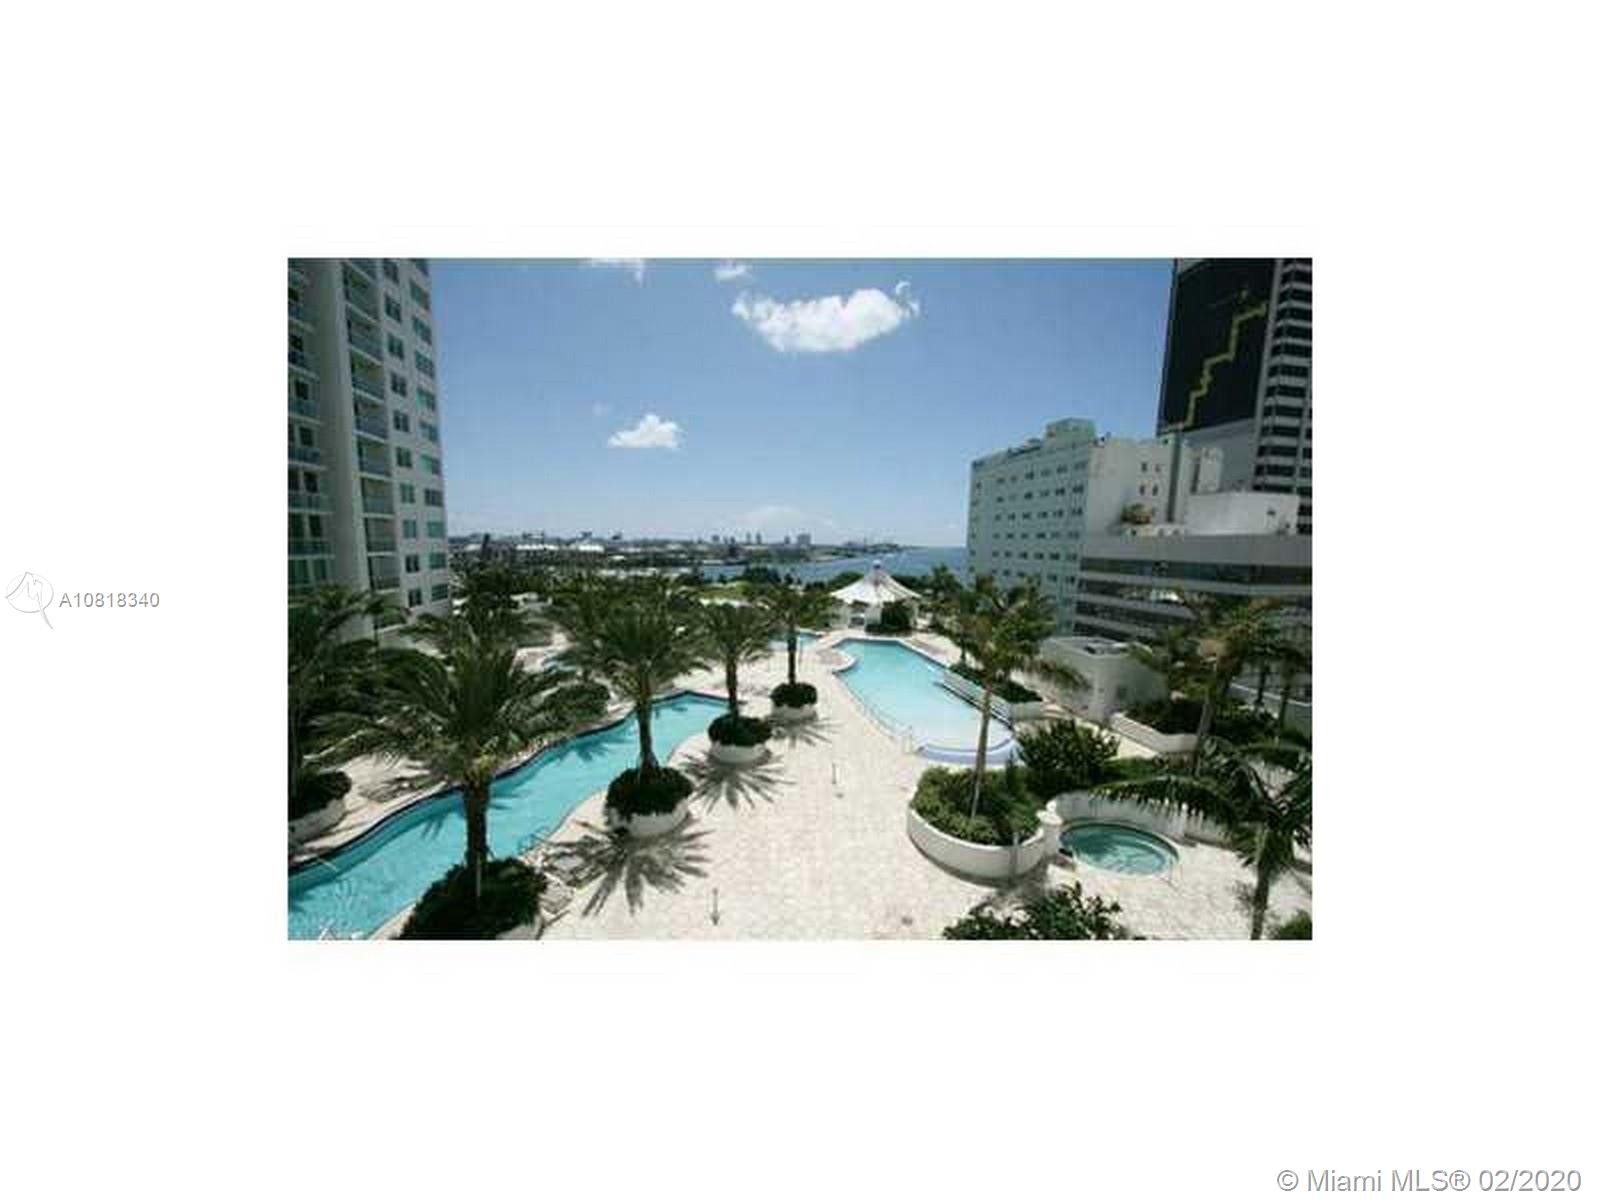 Great opportunity to own a beautiful, modern Studio with Polished Concrete Floors, Granite Counter Tops, Stainless Steel Appliances and 5 Star Amenities. plus STORAGE. The heart of Downtown Miami, this building offers 3 pools overlooking the bay, fitness center, SPA, Sauna, Steam Room, 24 Hour Concierge and Valet. Bring your Best Offer!